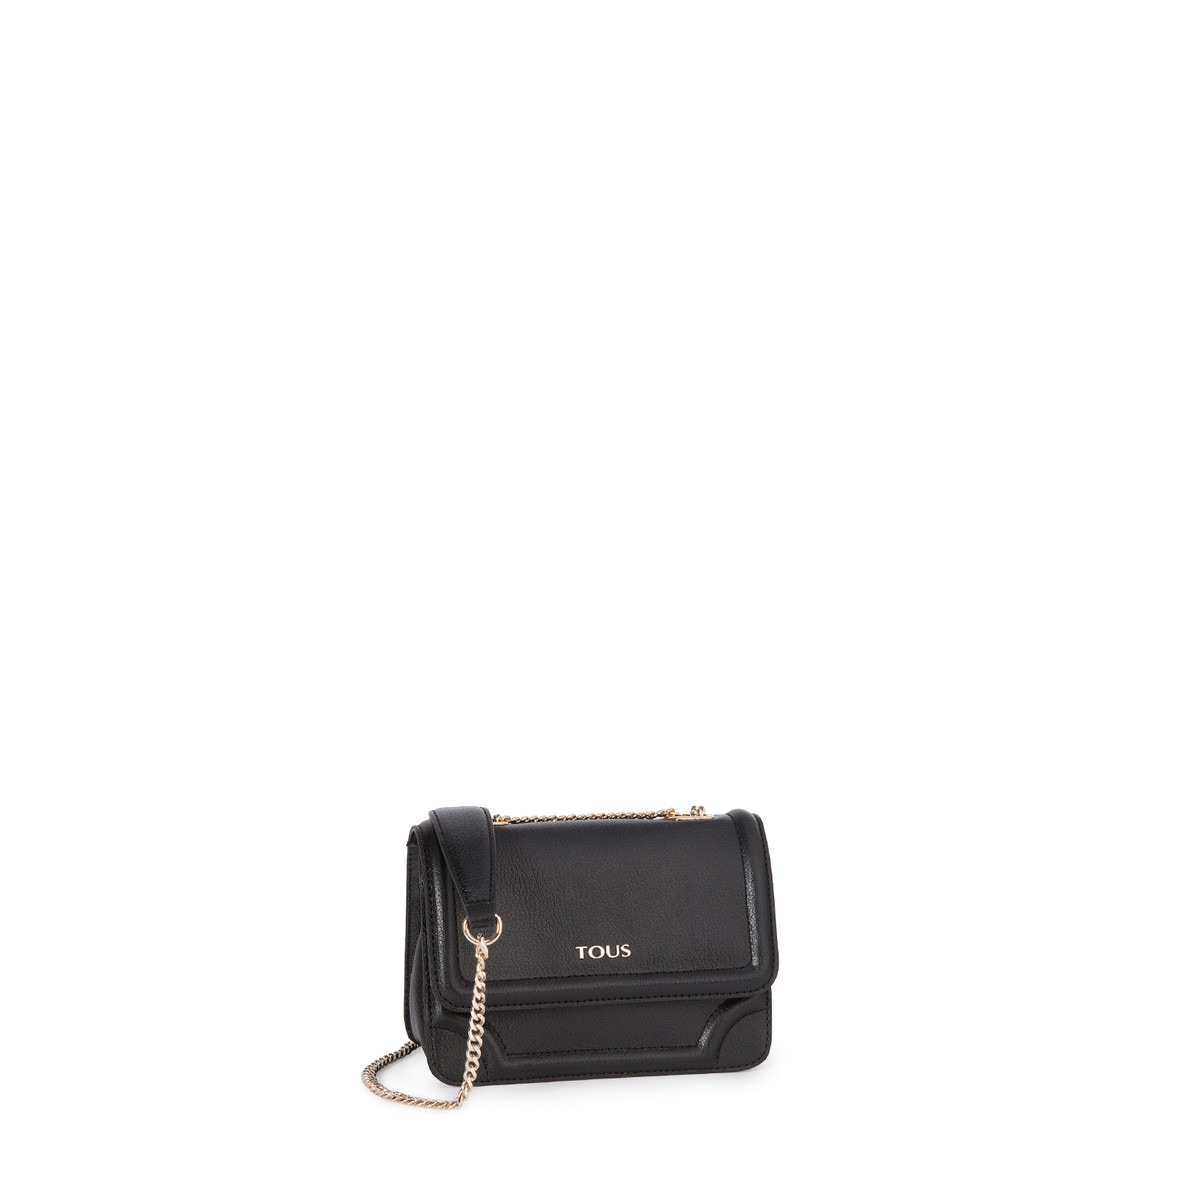 52bf7e38d Small black colored Leather Obraian Crossbody bag - Tous Site GB